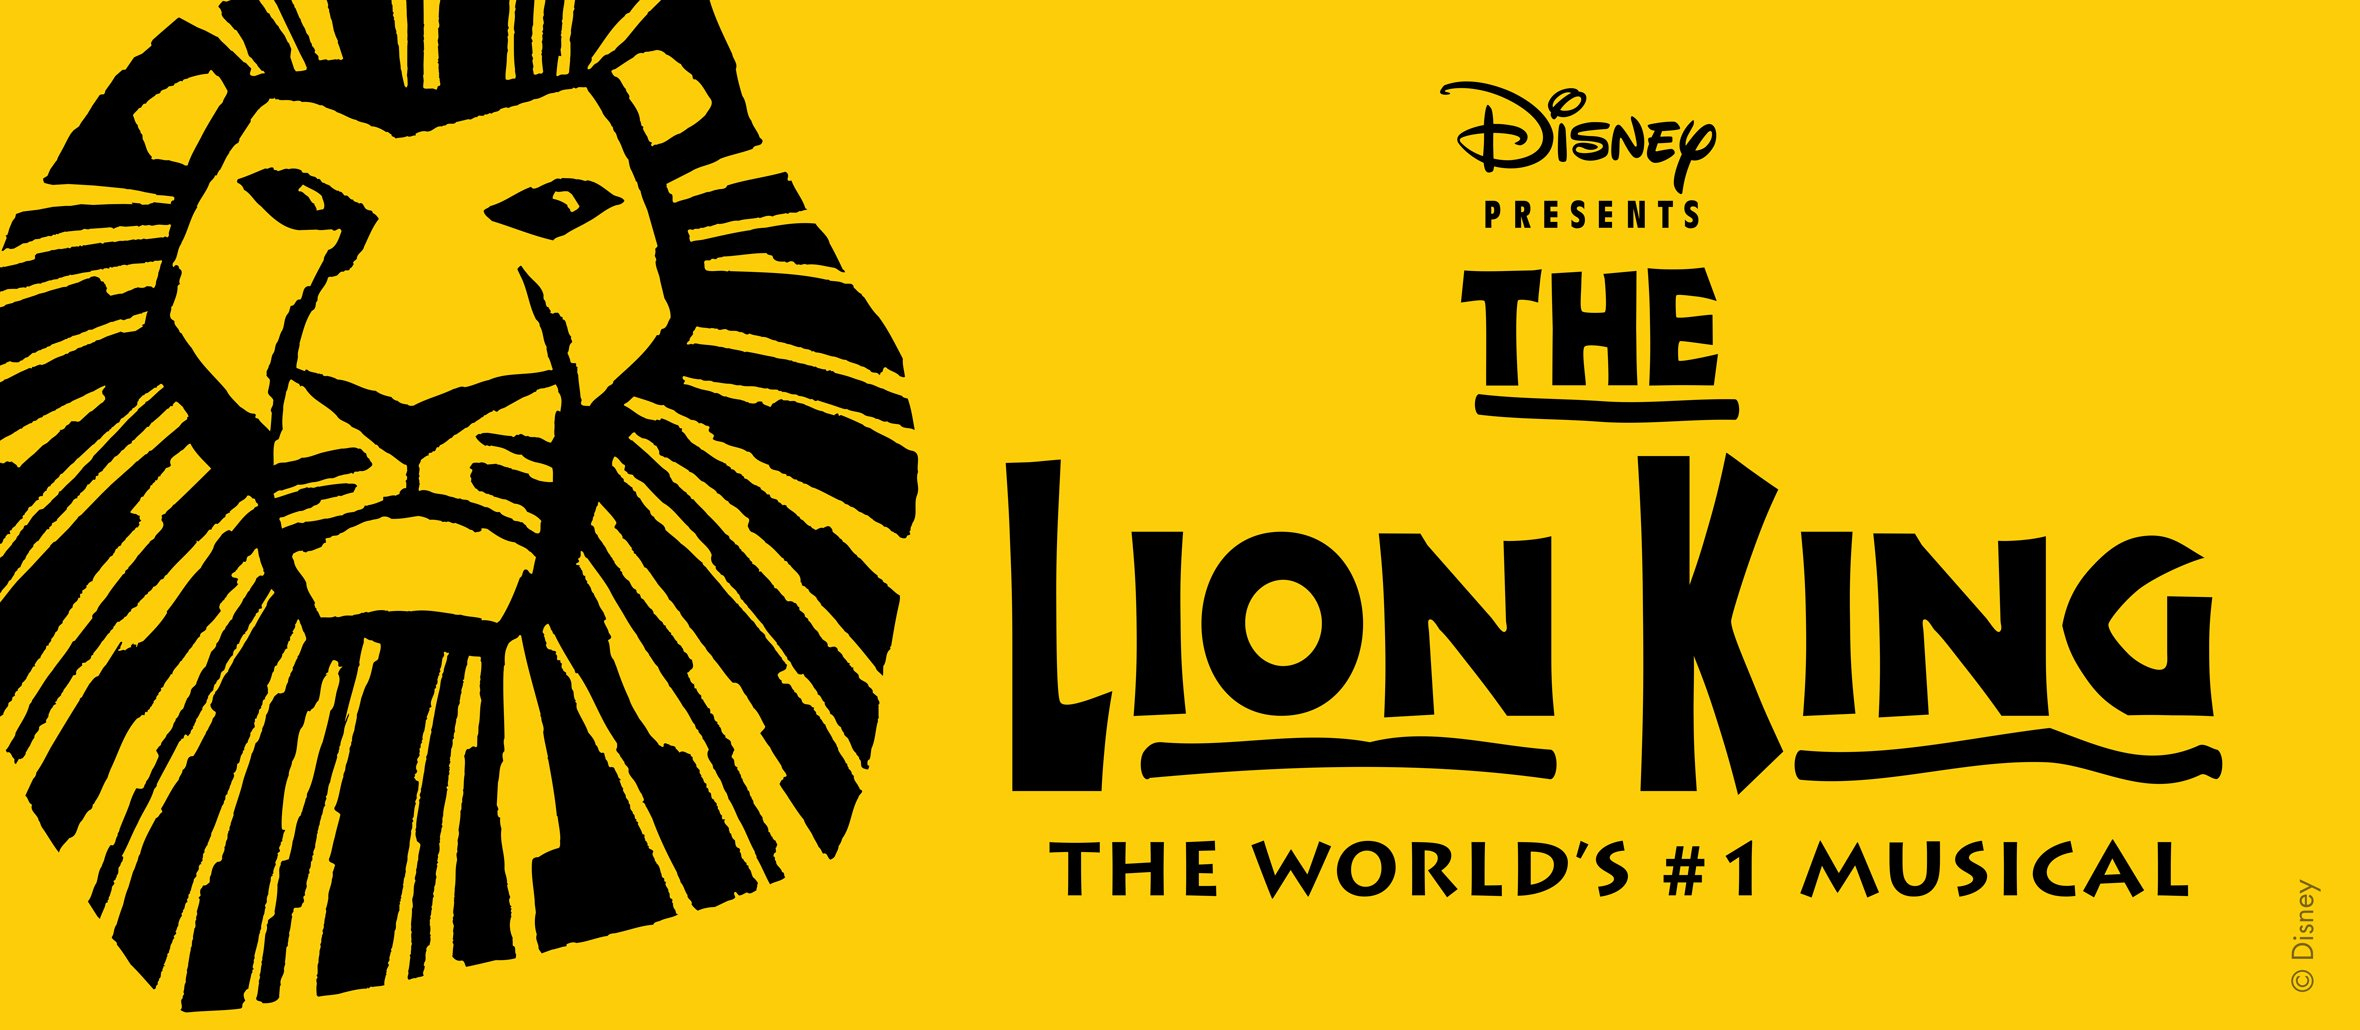 Disney's The Lion King | Barbara B. Mann - Performing Arts Hall Barbara B Mann Calendar 2019